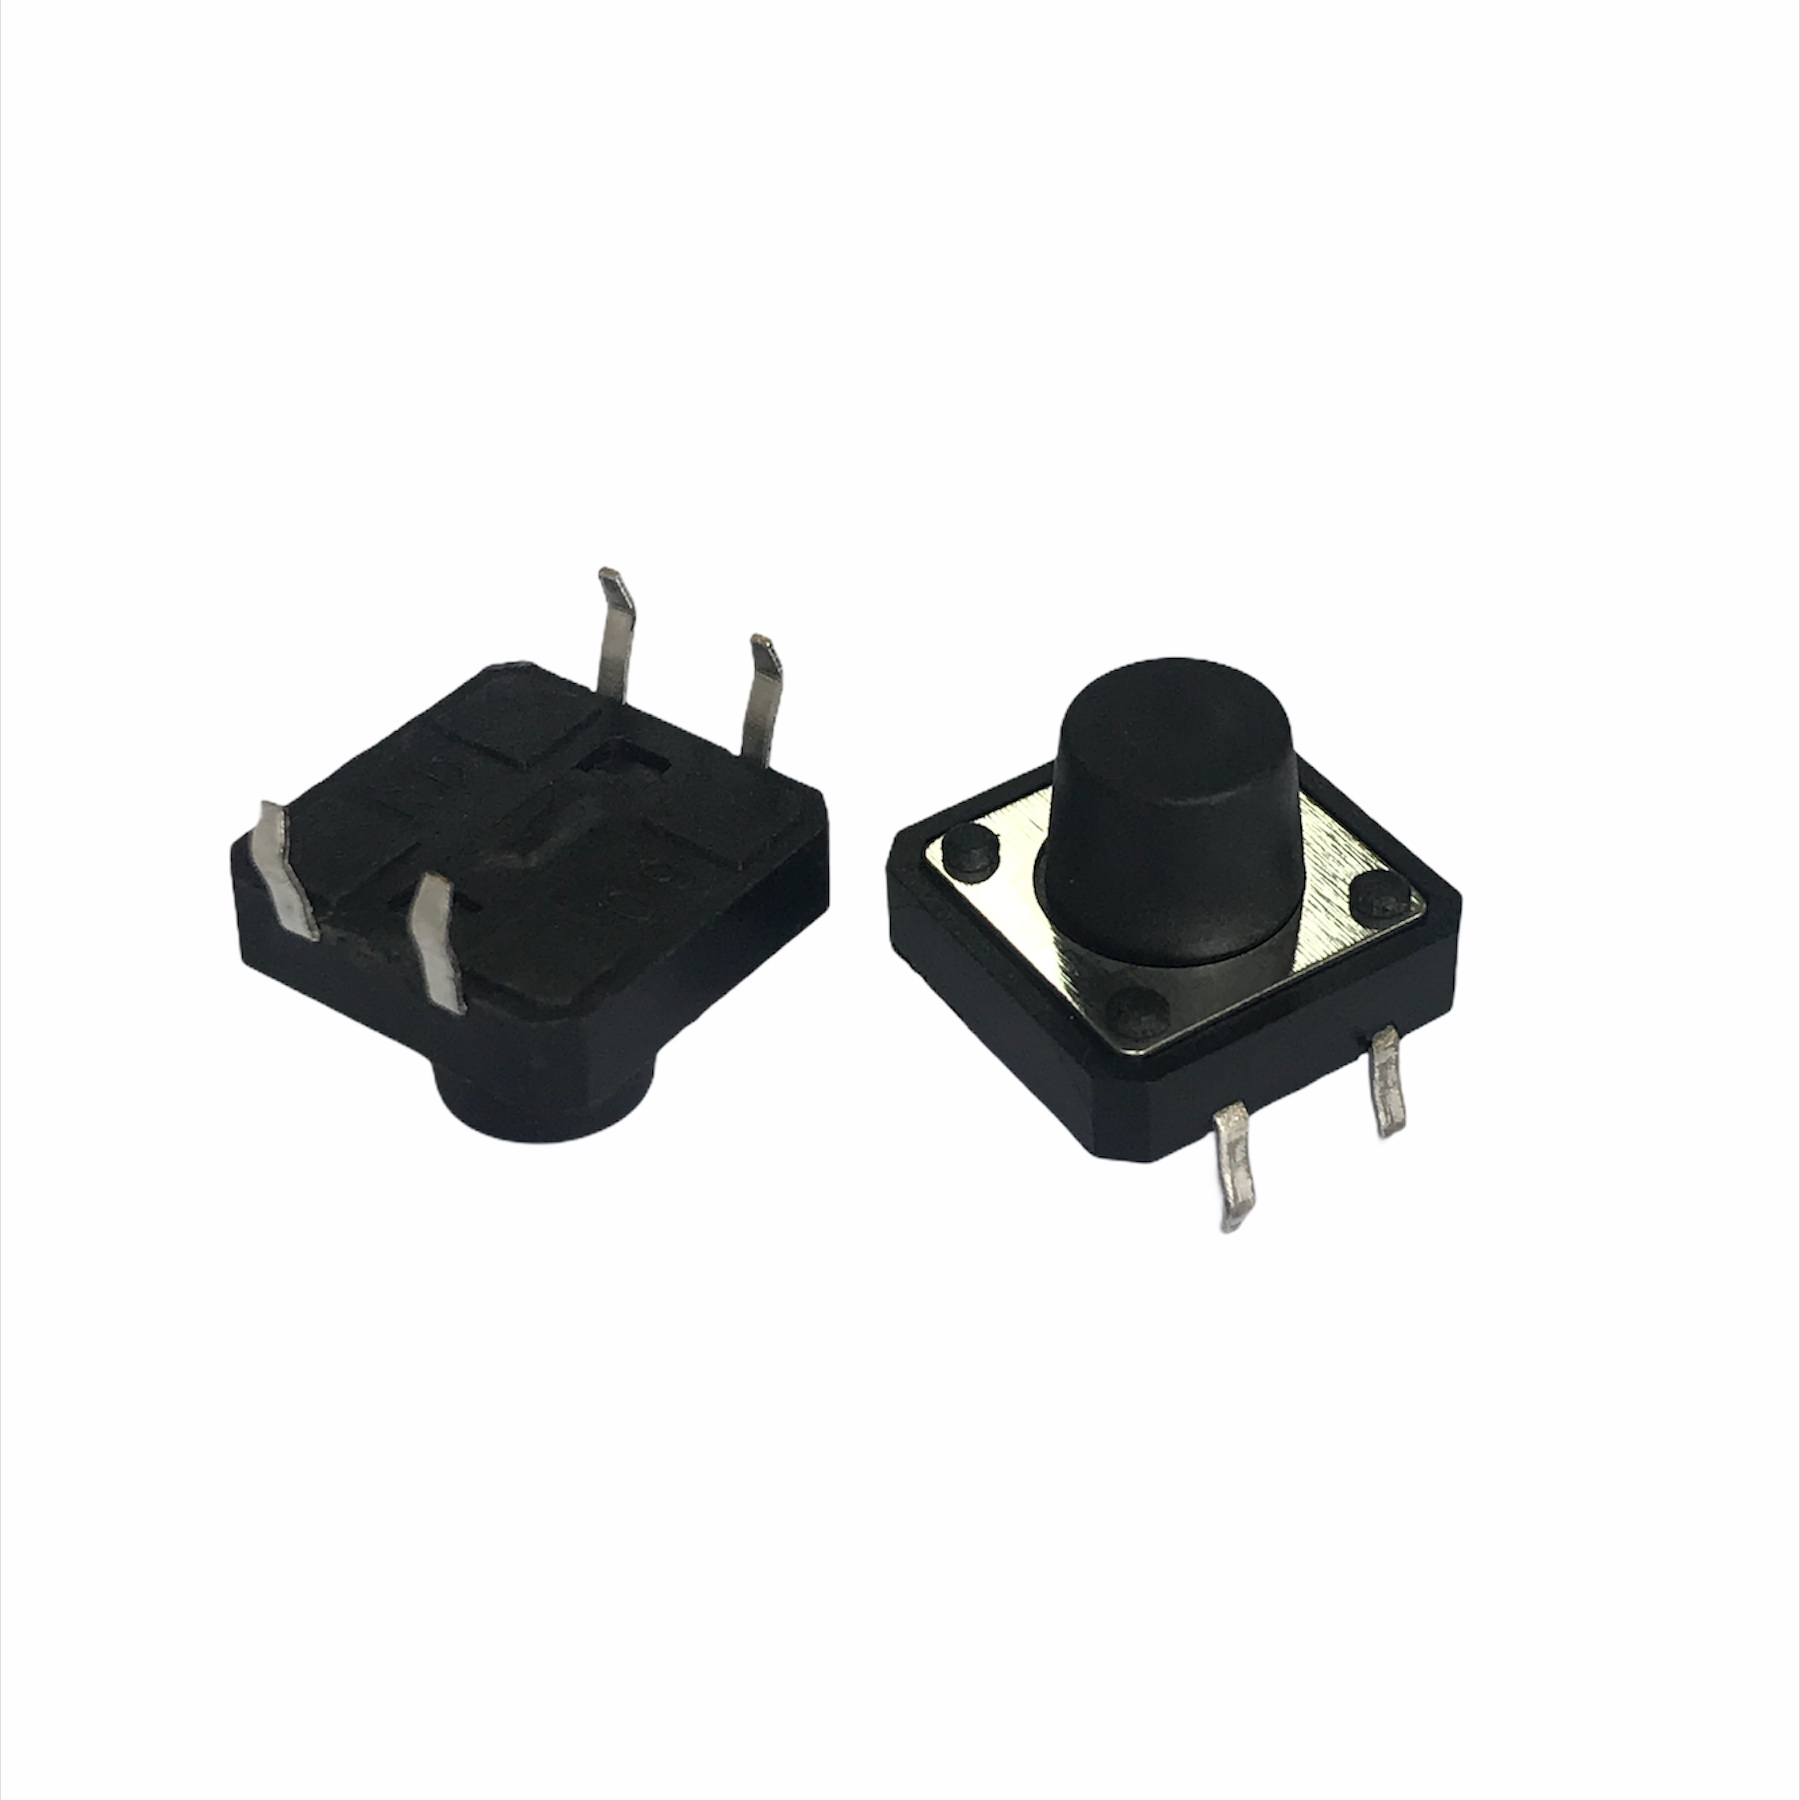 TACT SWITCH 12X12X8,5MM 4T 180 GRAUS (CHAVE TACTIL)